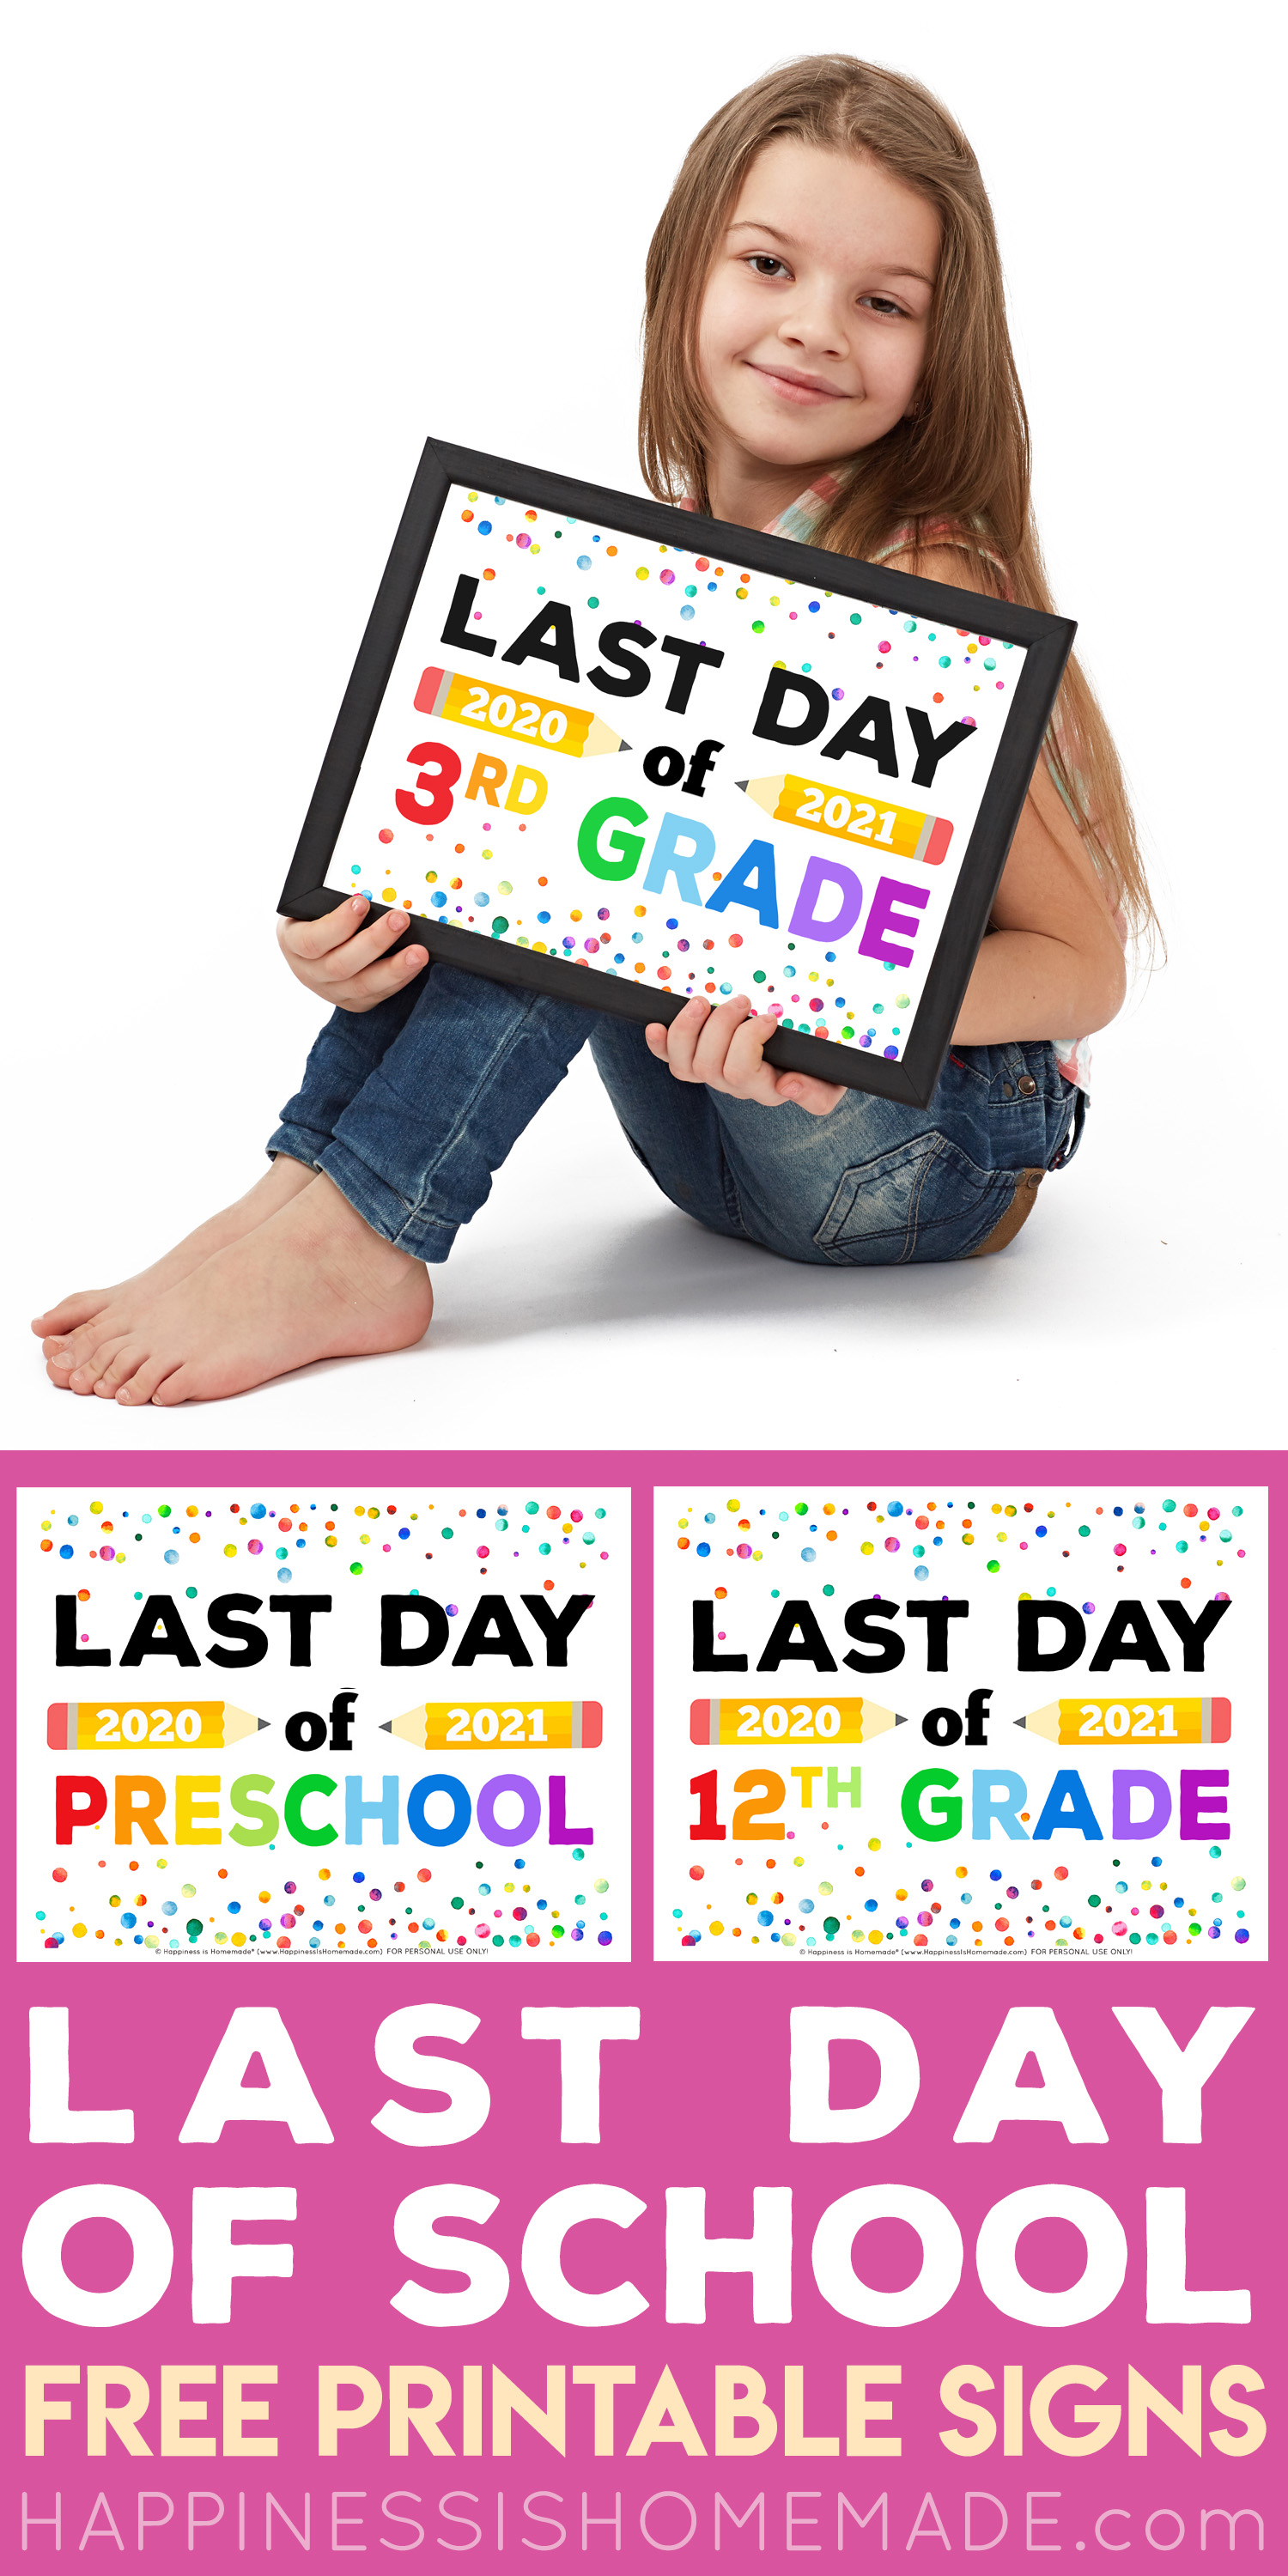 Printable Last Day of School Signs graphic